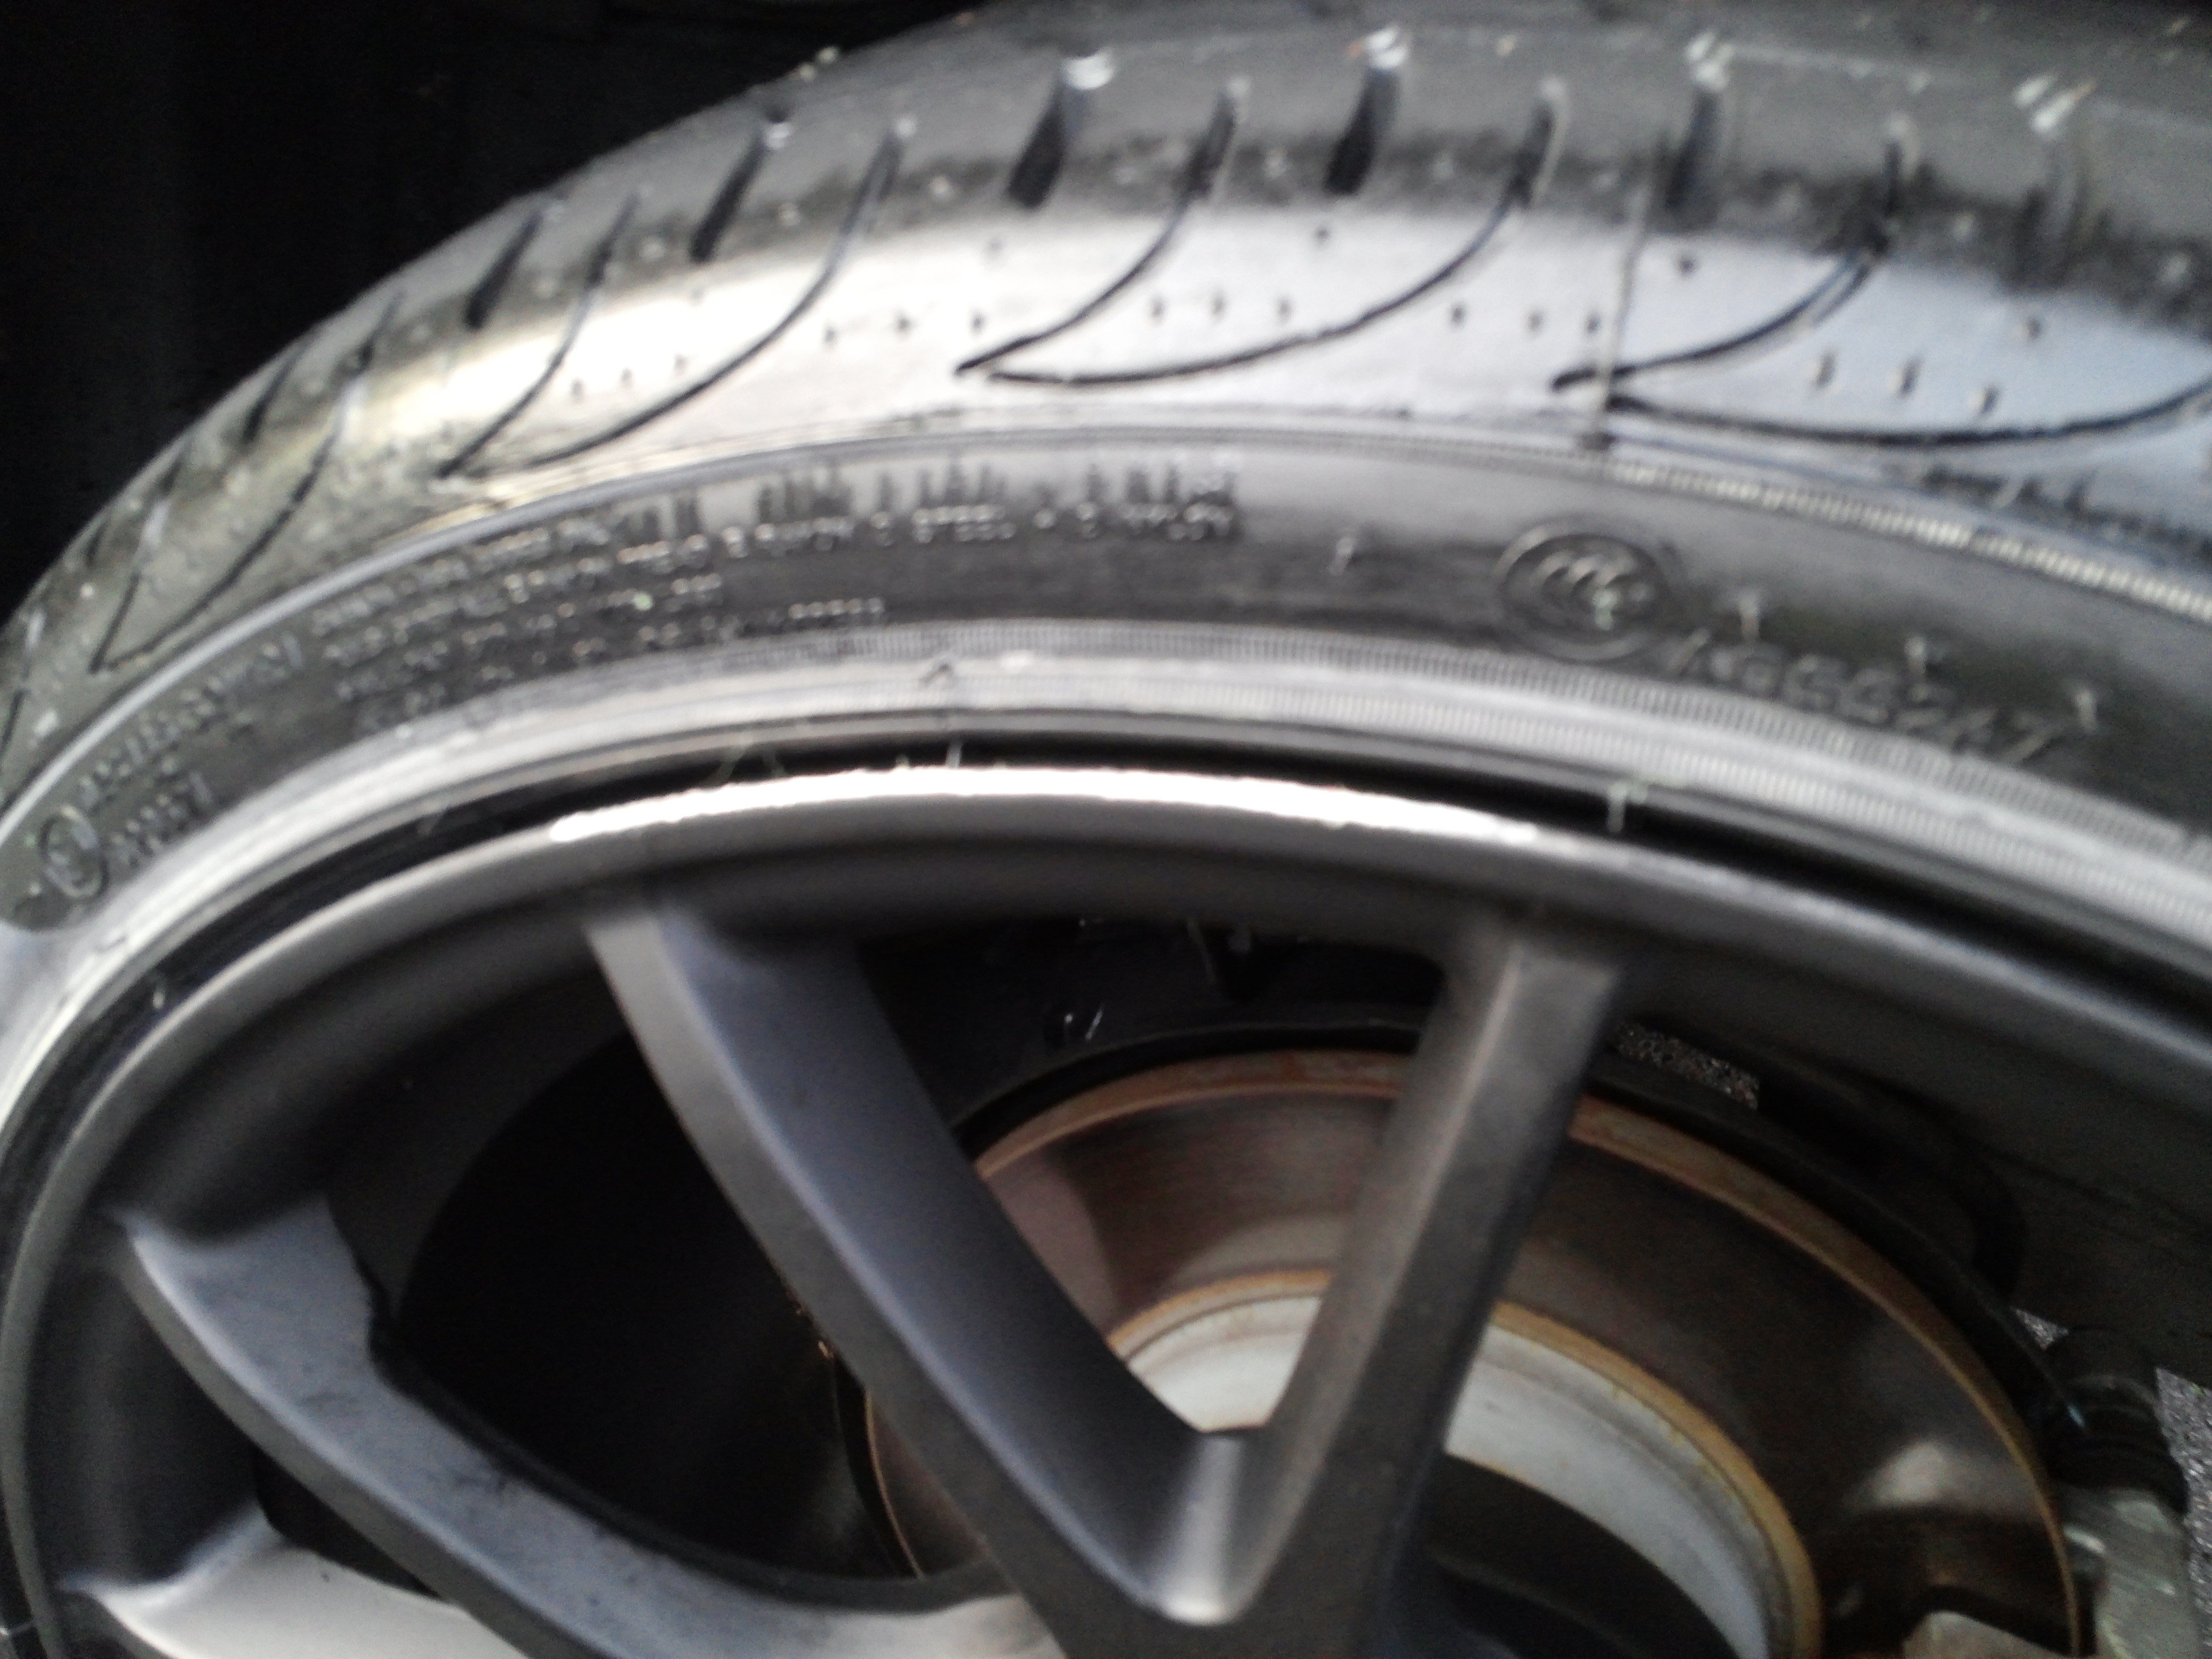 Tire World Auto Repair Tire Pros is the premier auto service shop in Colorado Springs, CO. For the best deals on tires and car repairs, stop by and see us today!